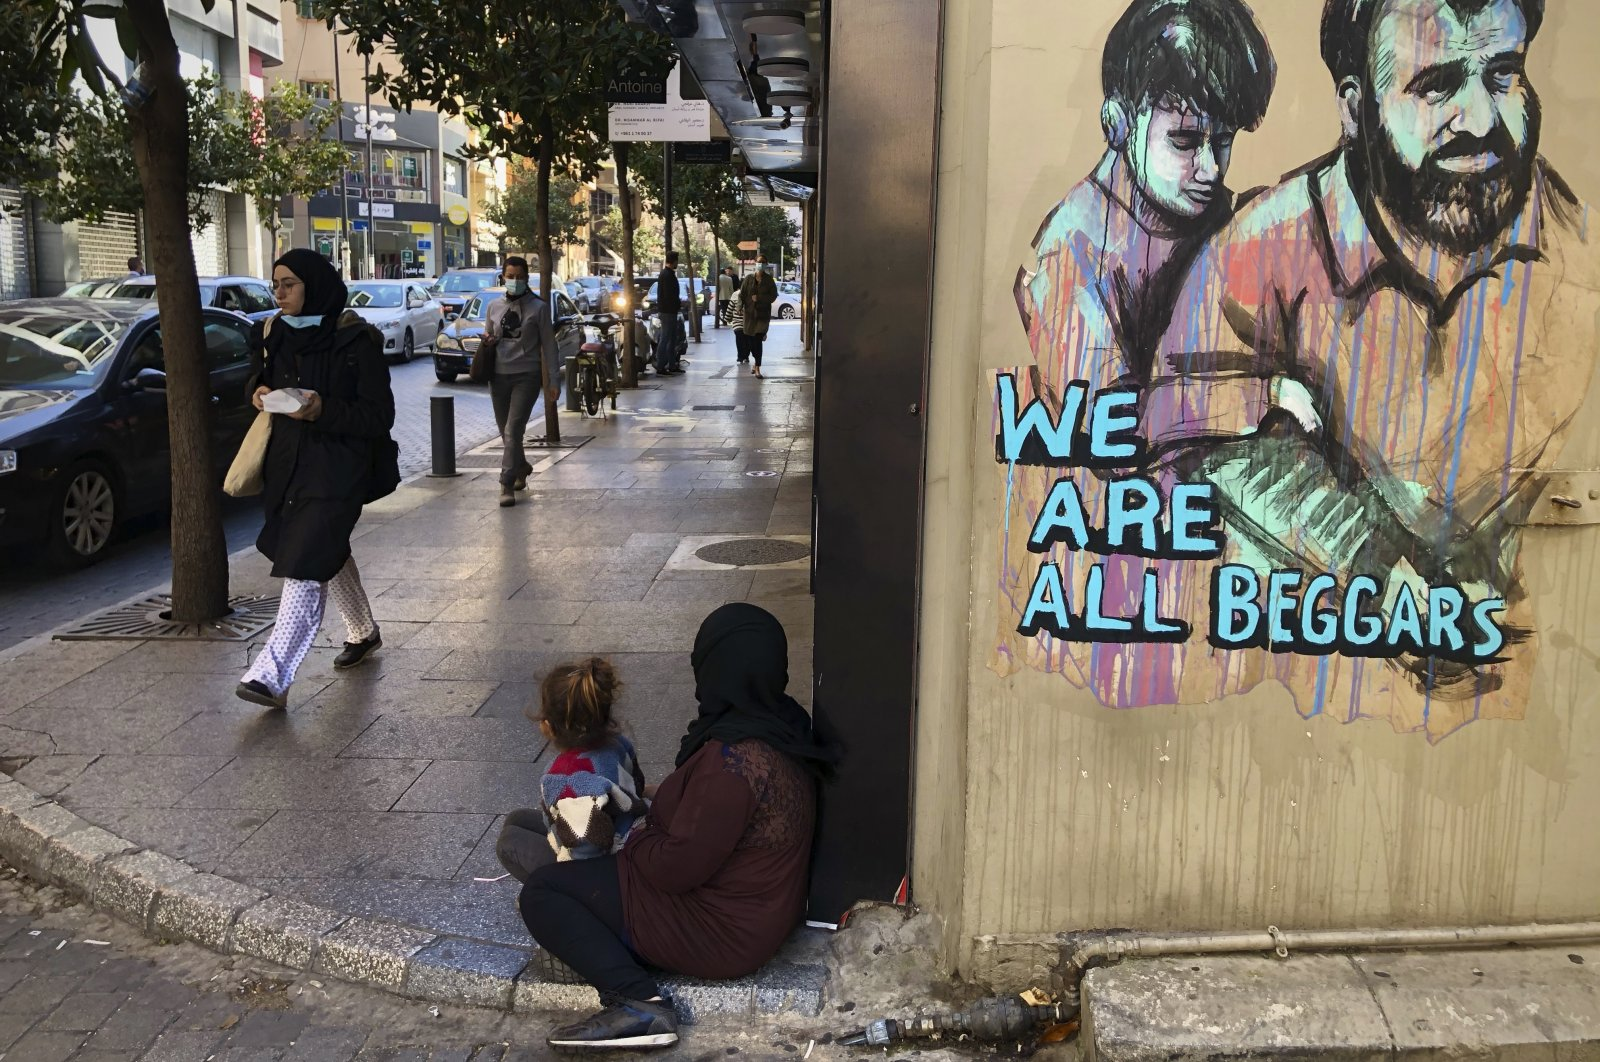 Passersby walk by a woman (center) sitting on the ground with her daughter begging on Beirut's commercial Hamra Street, in Beirut, Lebanon, March 16, 2021. (AP Photo)